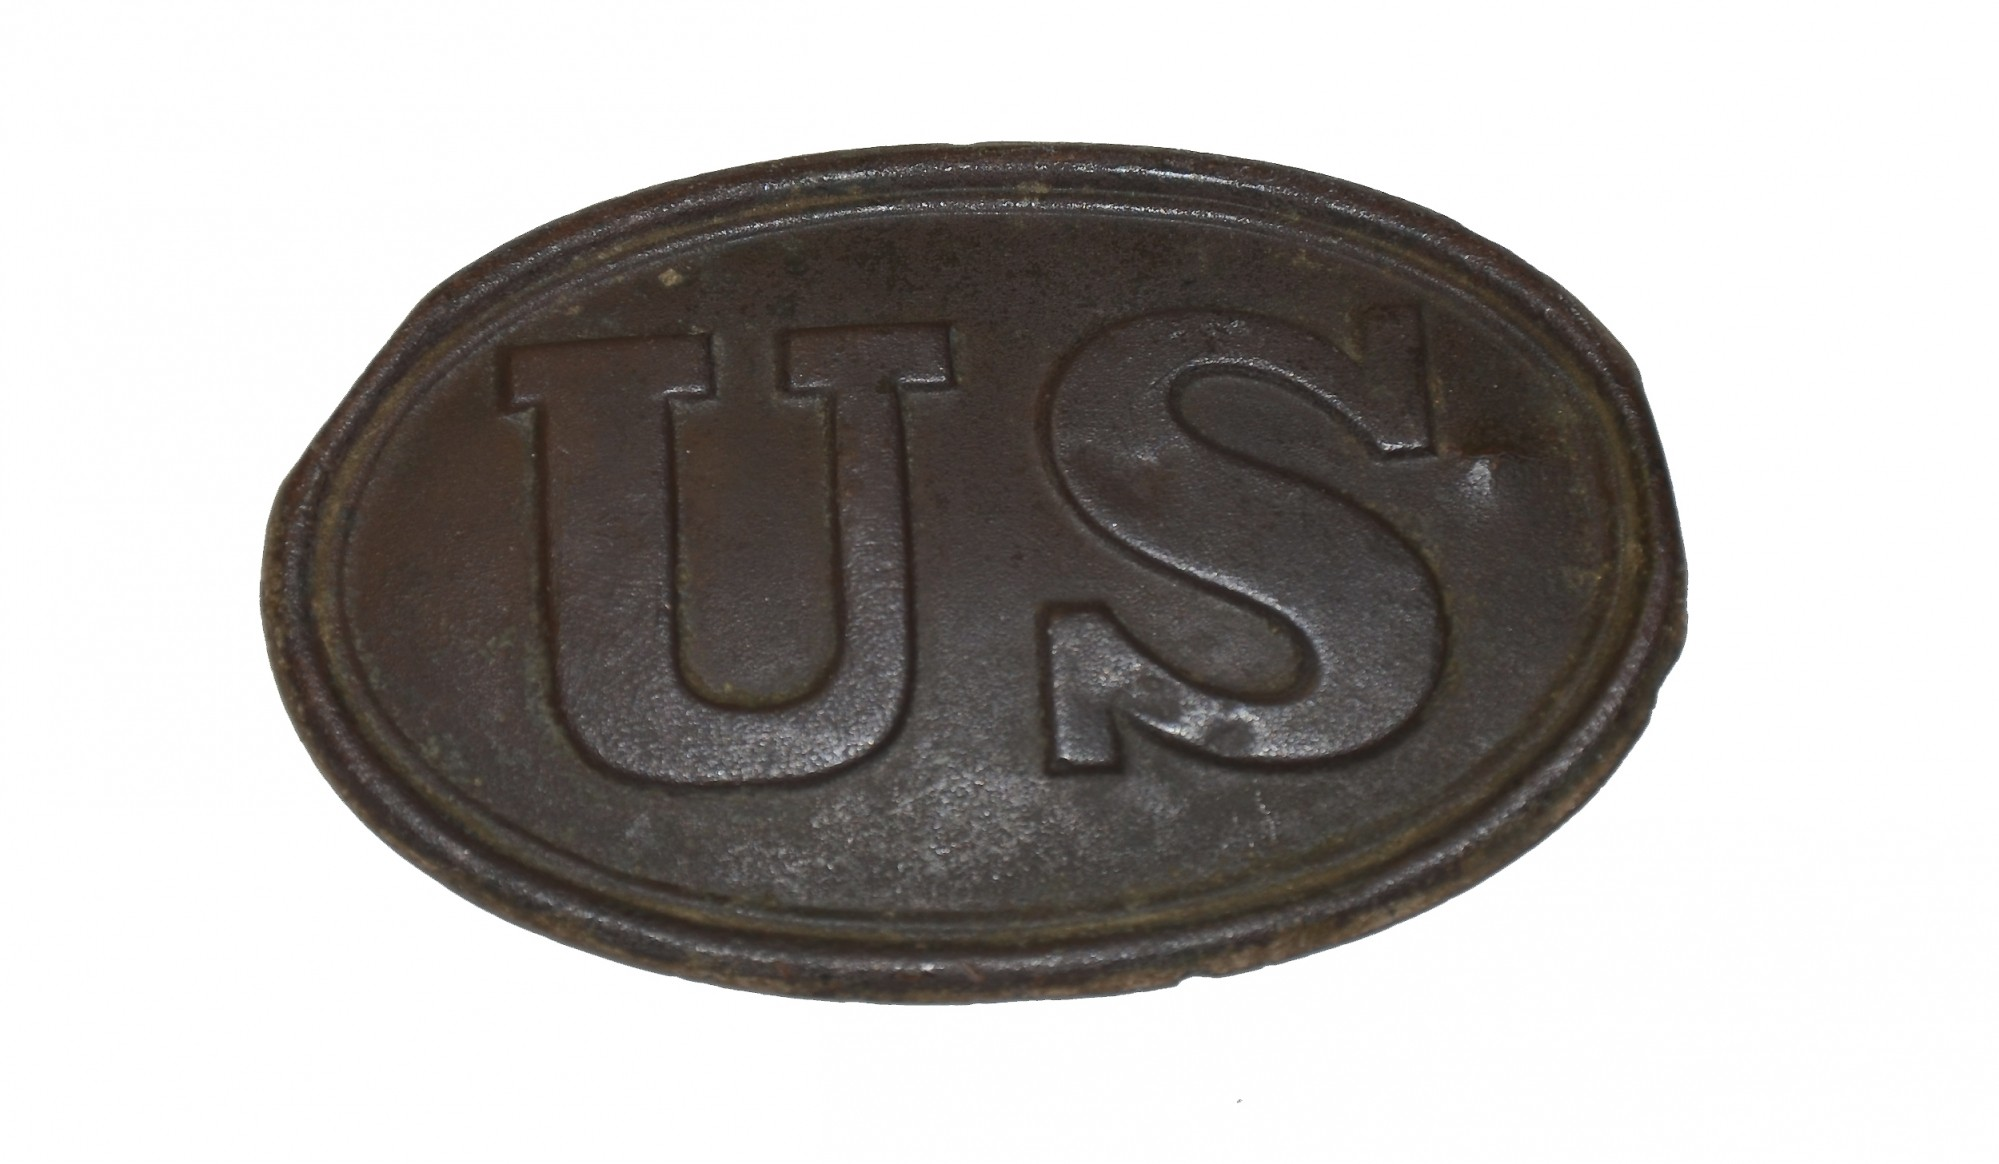 US PATTERN 1839 CARTRIDGE BOX PLATE FROM THE ROSENSTEEL FAMILY COLLECTION